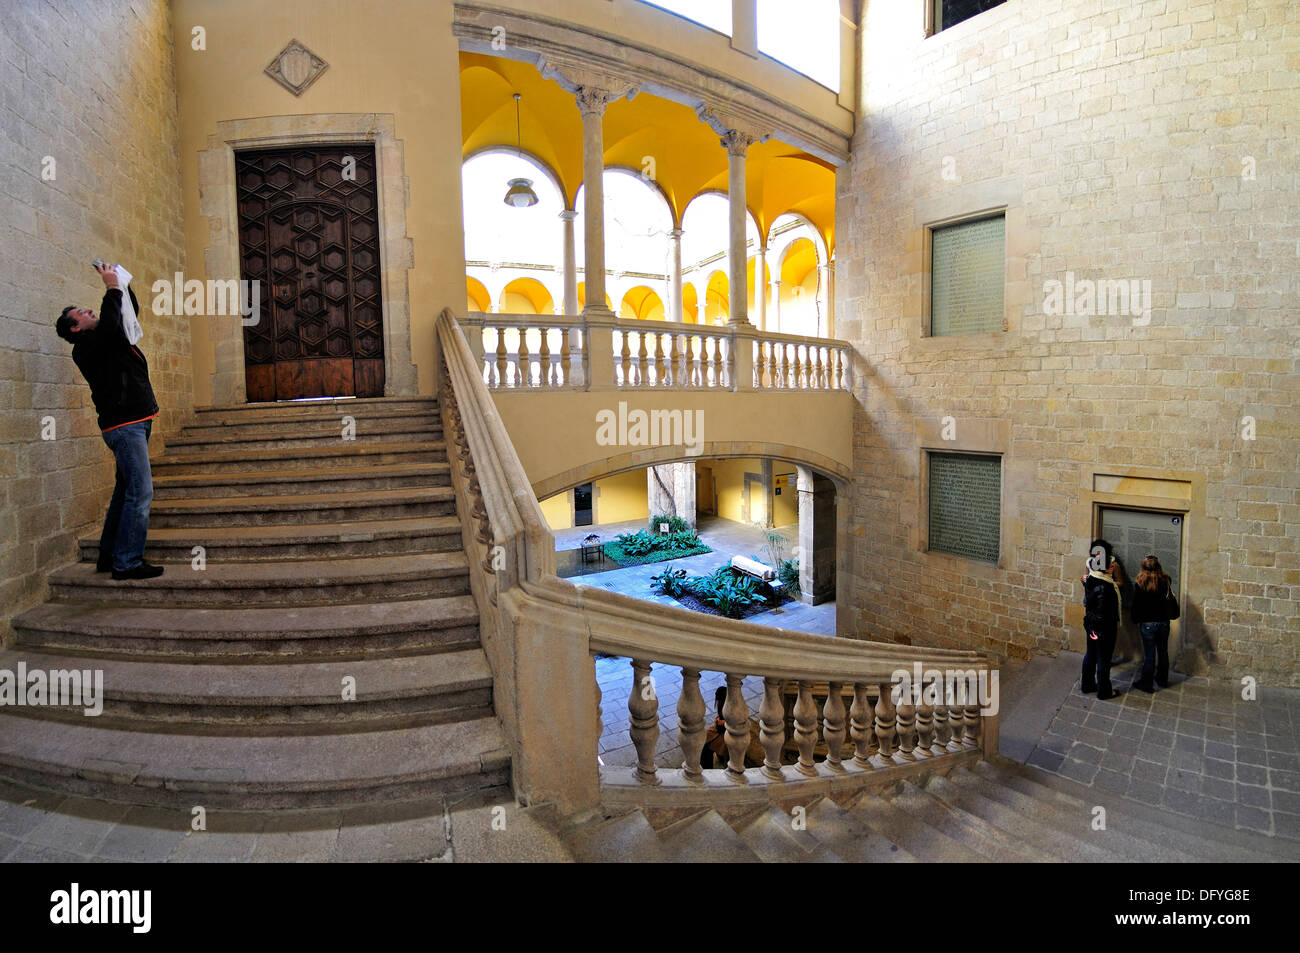 Barcelona, Spain. Palau del Lloctinent. (Antoni Carbonell - 1549-57) Staircase in Courtyard Stock Photo